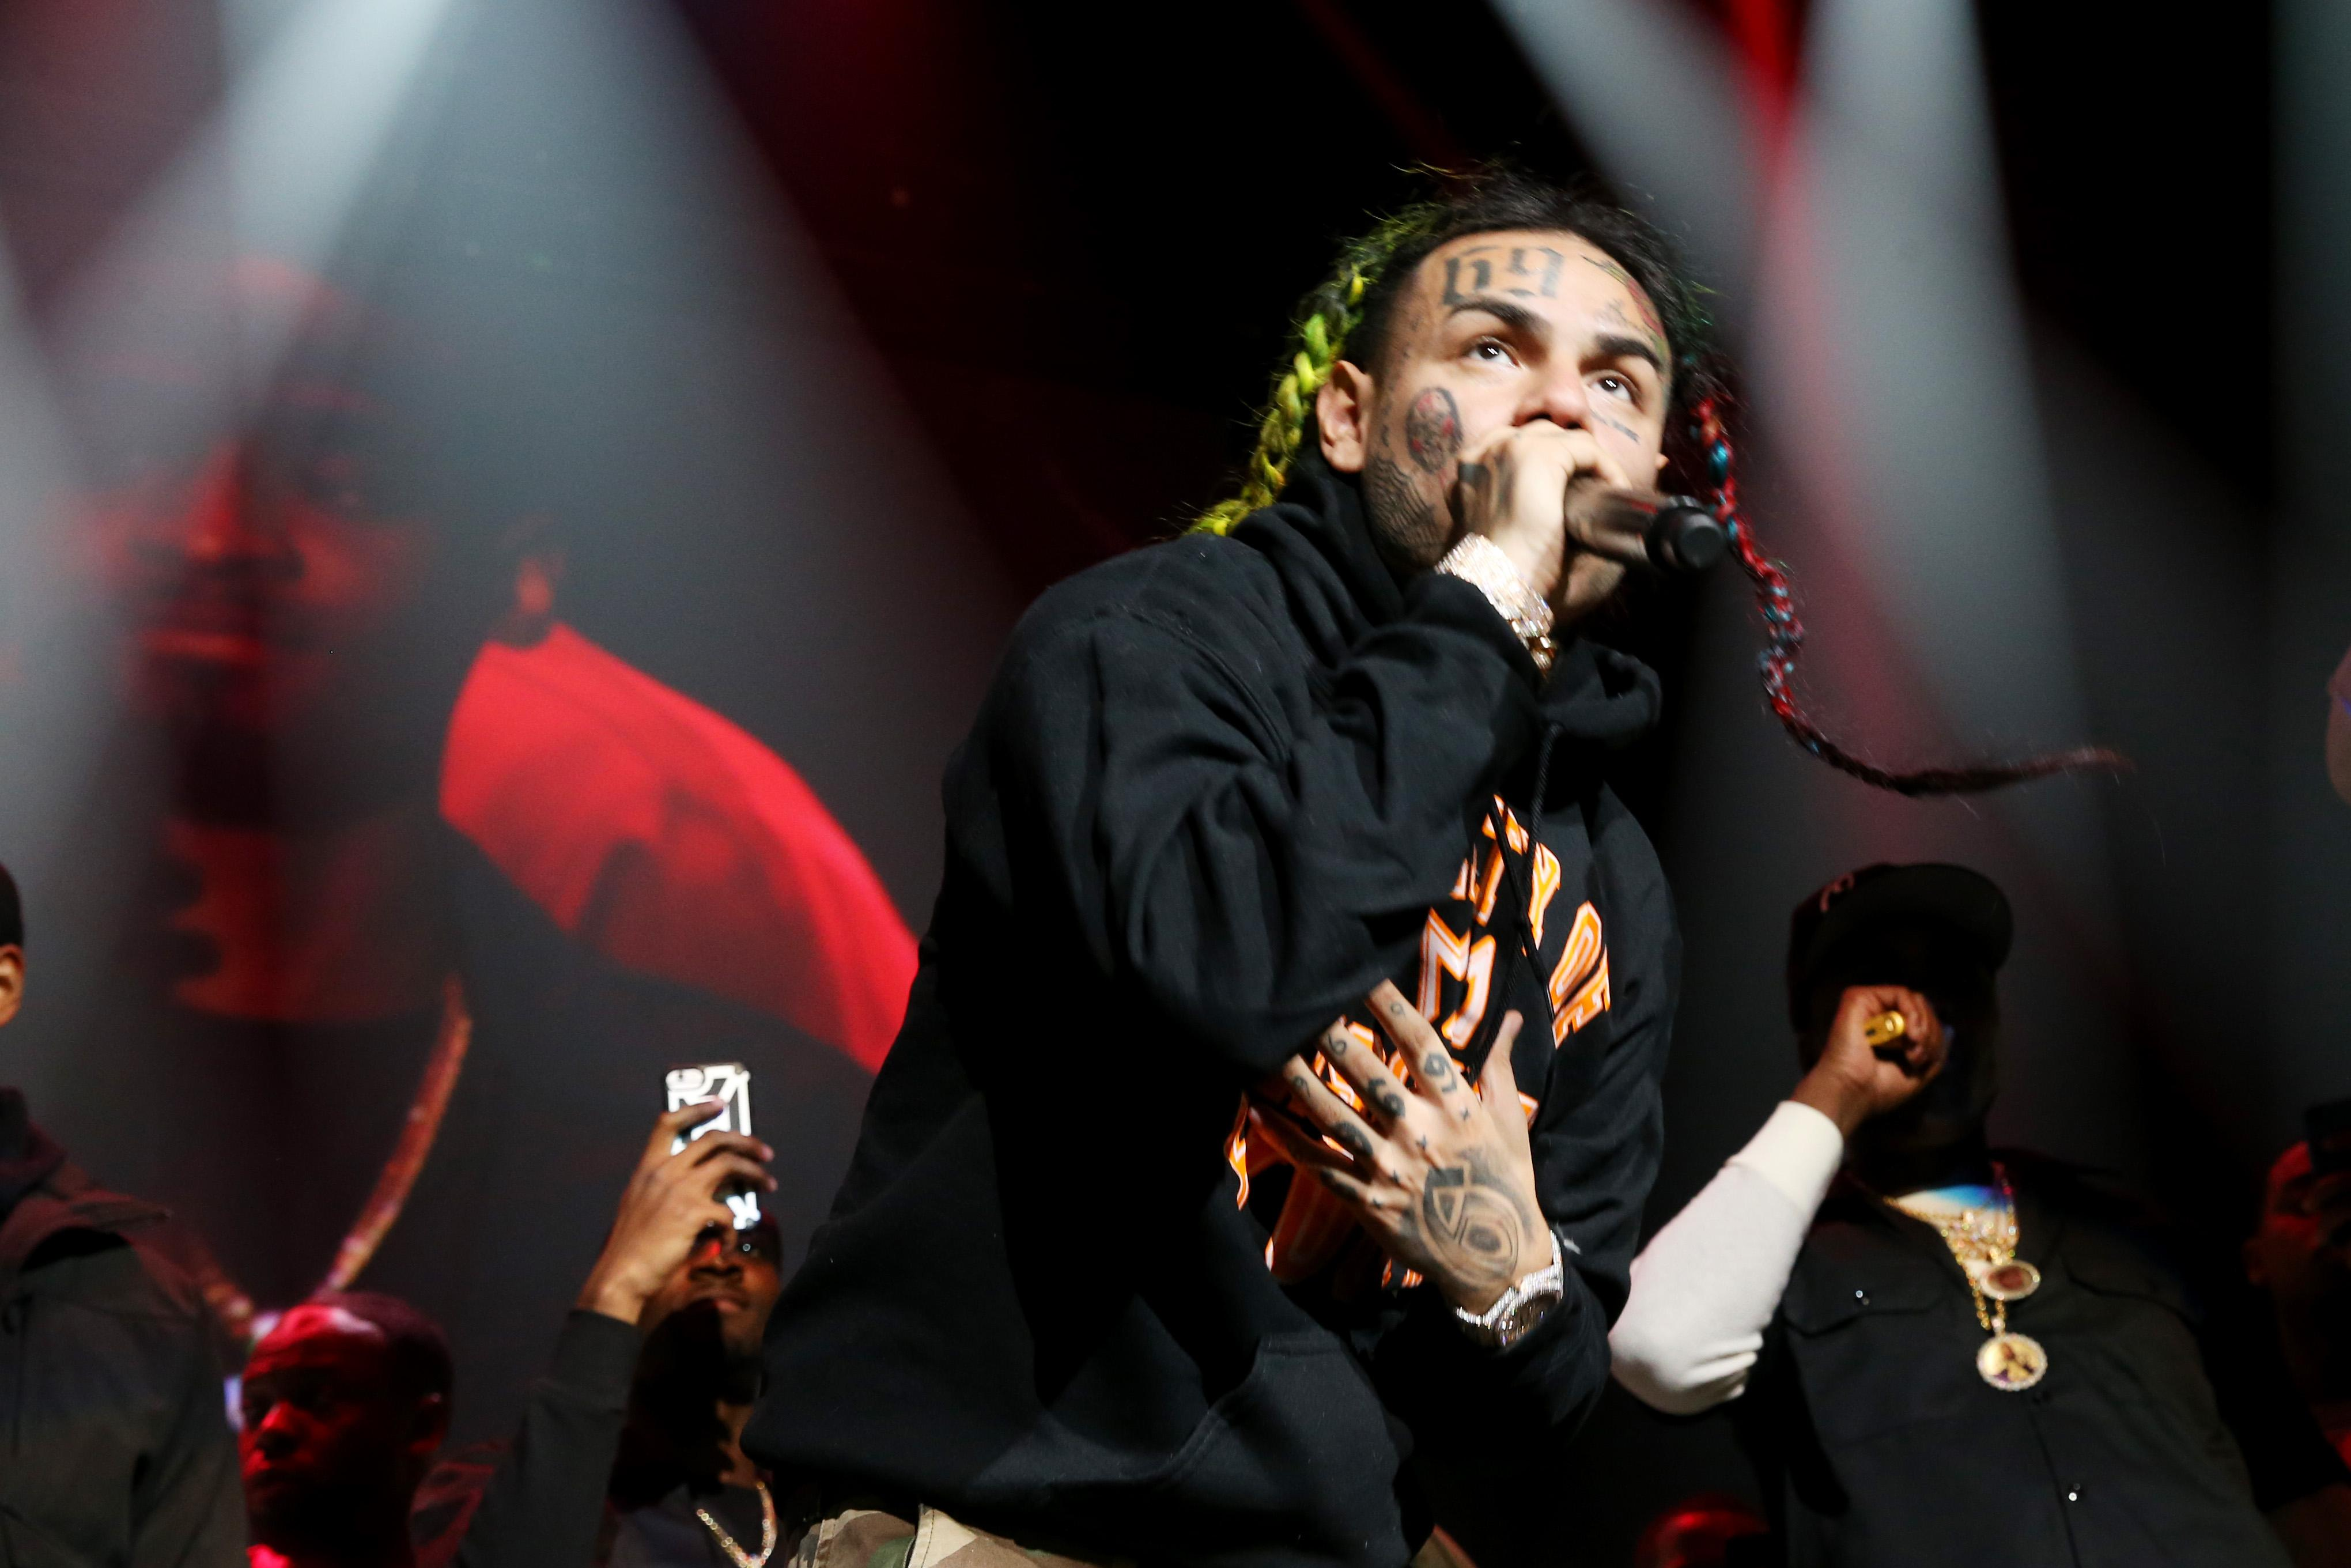 Tekashi 6ix9ine Has Been Arrested on Federal Crime Charges